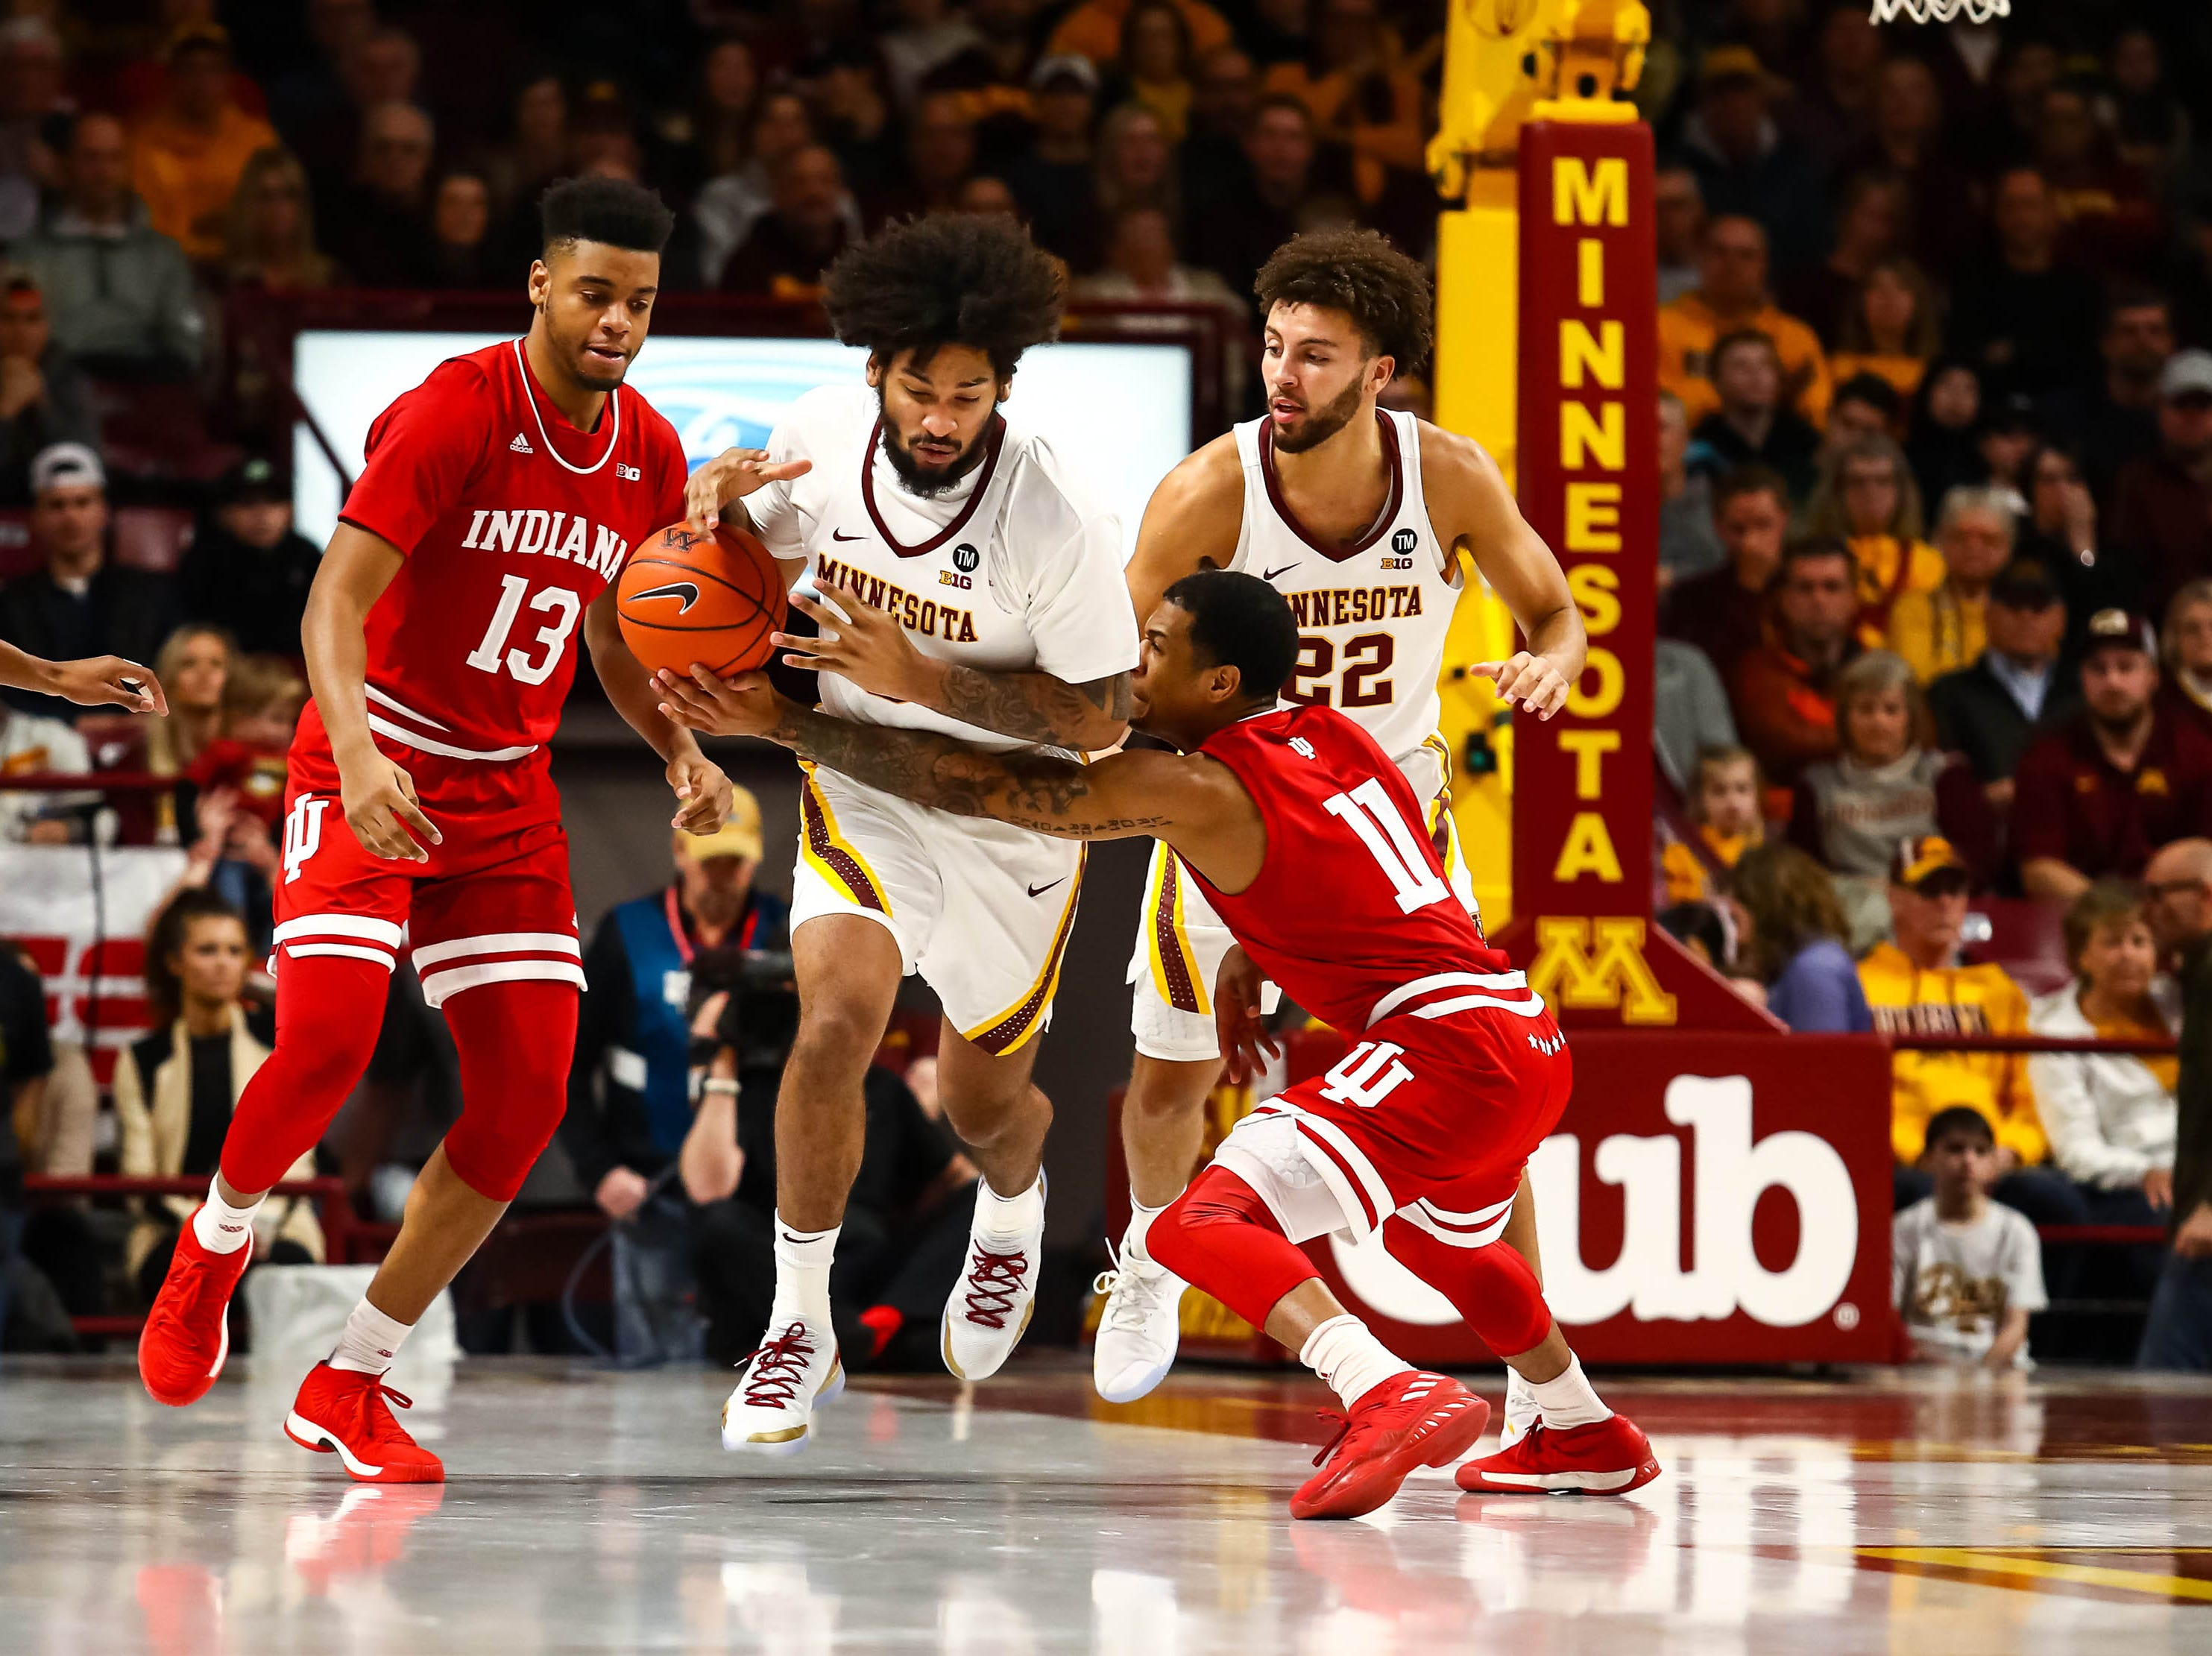 Minnesota Golden Gophers forward Jordan Murphy (3) and Indiana Hoosiers guard Devonte Green (11) chase after a loose ball in the first half at Williams Arena.